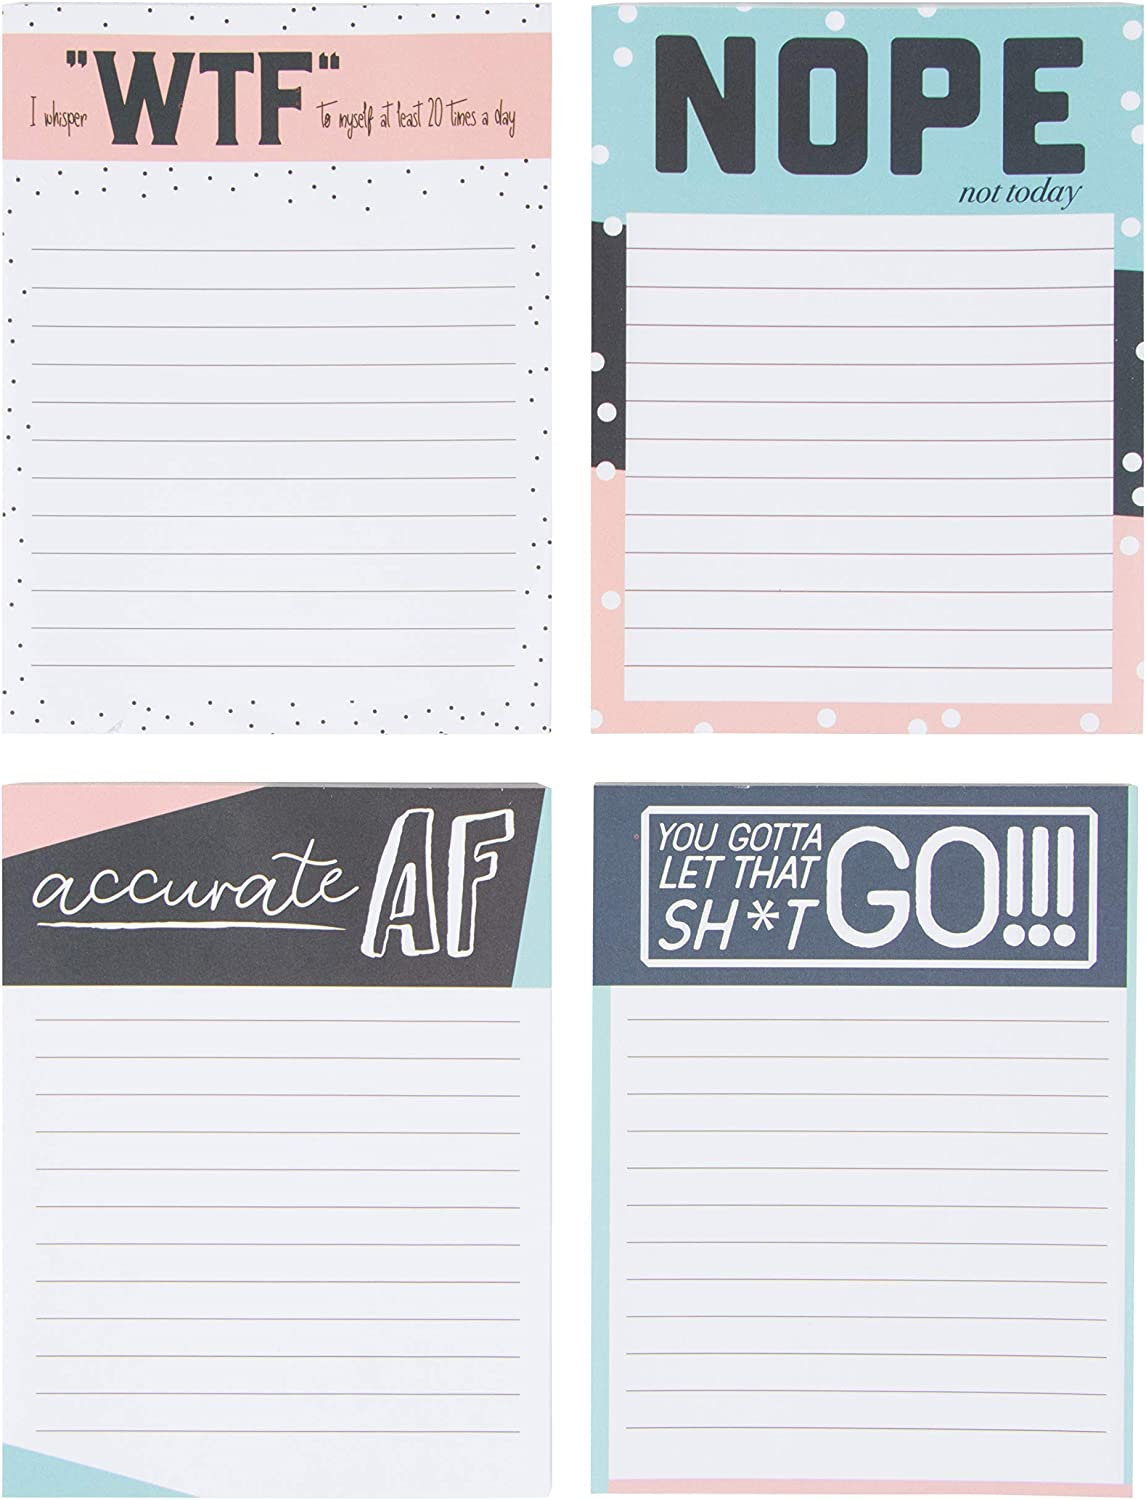 Paper Junkie to Do List Notepads with Fun Messages (4 Pack, 50 Sheets)